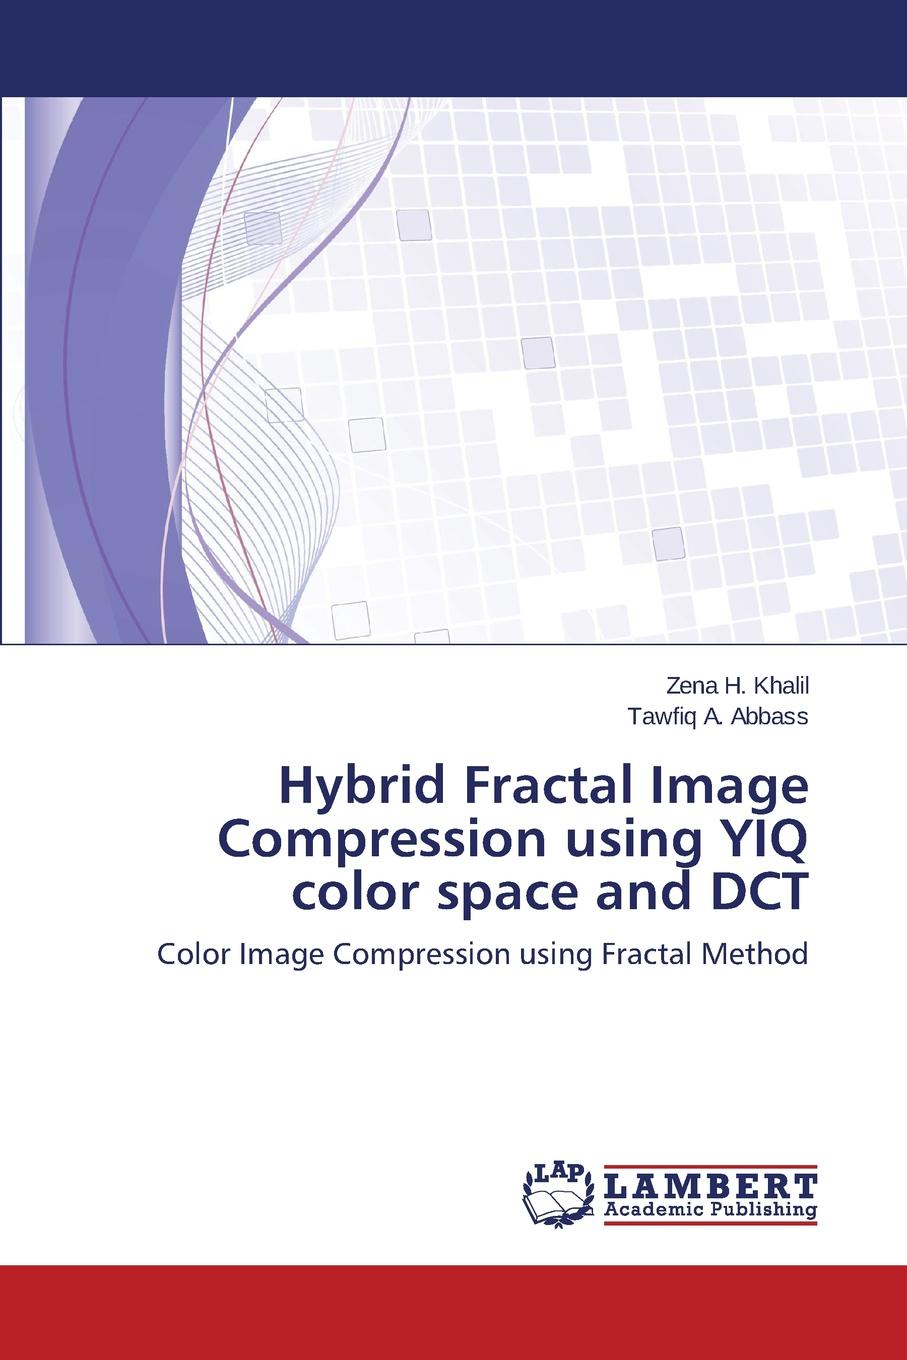 H. Khalil Zena, A. Abbass Tawfiq Hybrid Fractal Image Compression using YIQ color space and DCT still image compression using discreet wavelet transform